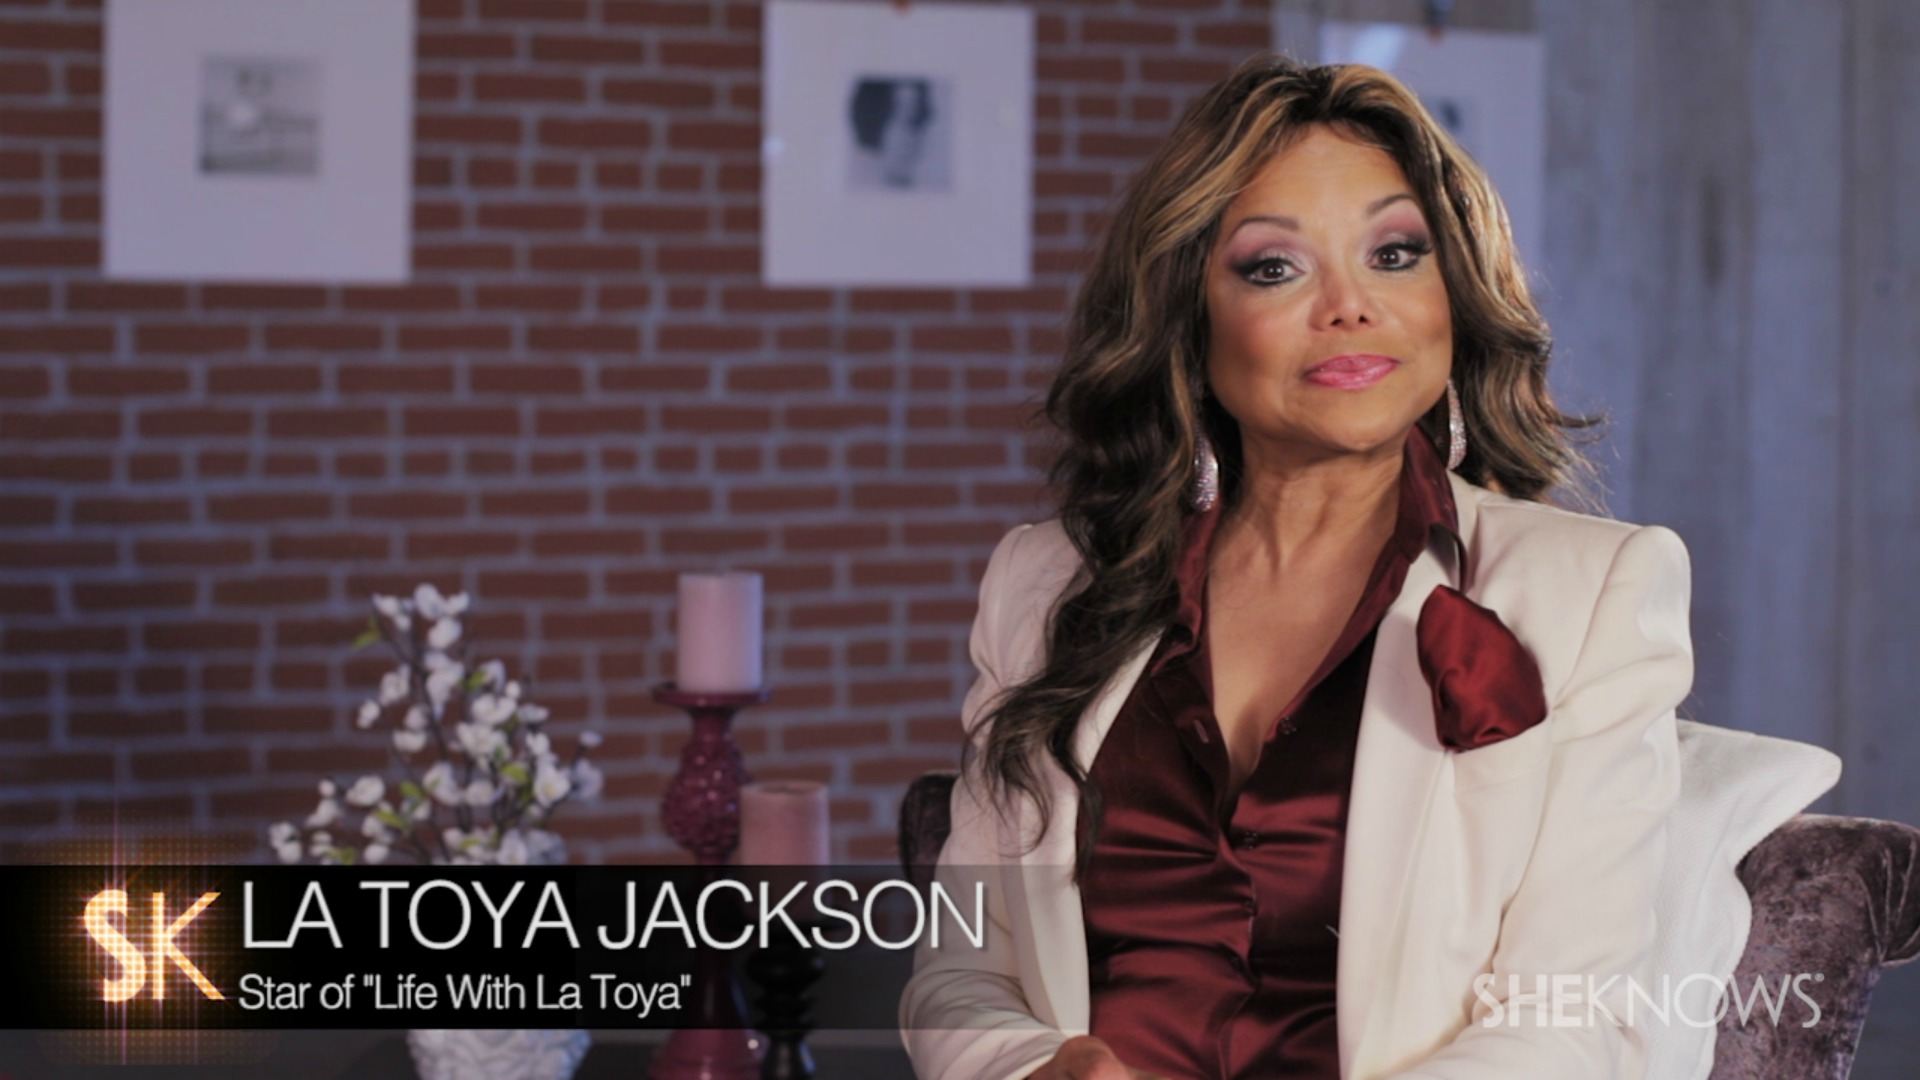 What brought La Toya Jackson's wedding to a halt? The star tells all